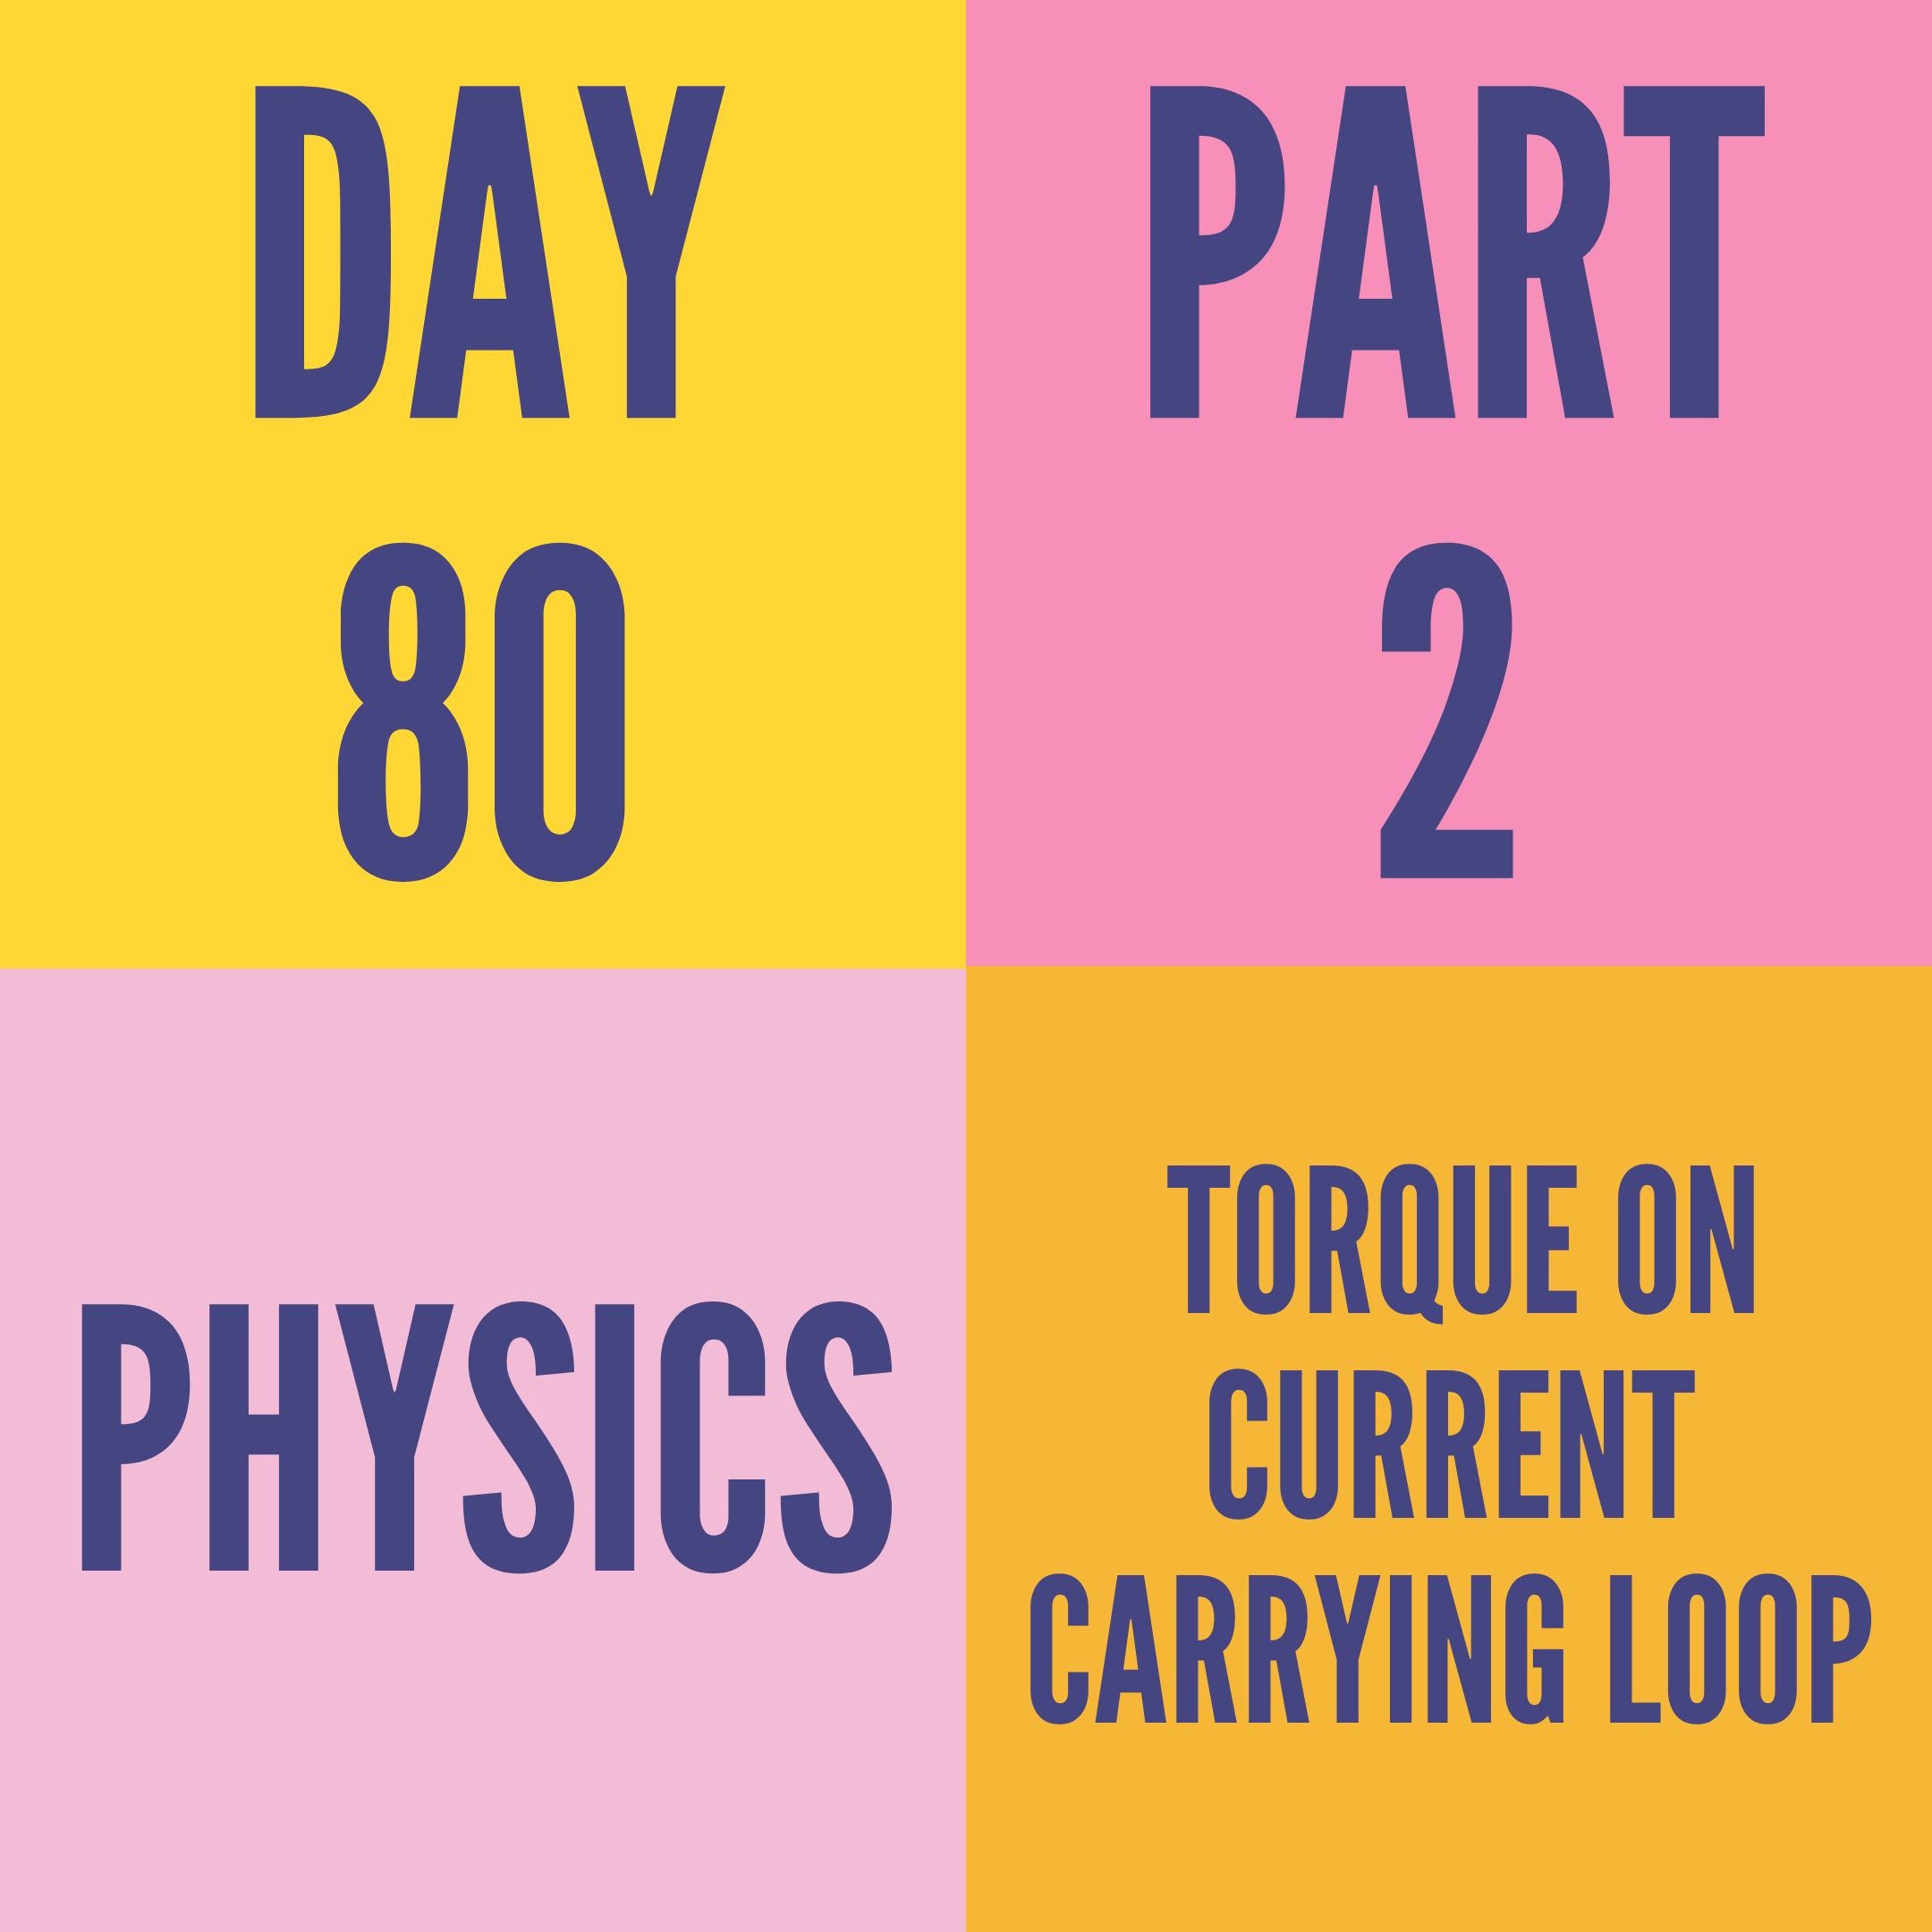 DAY-80 PART-2 TORQUE ON CURRENT CARRYING LOOP